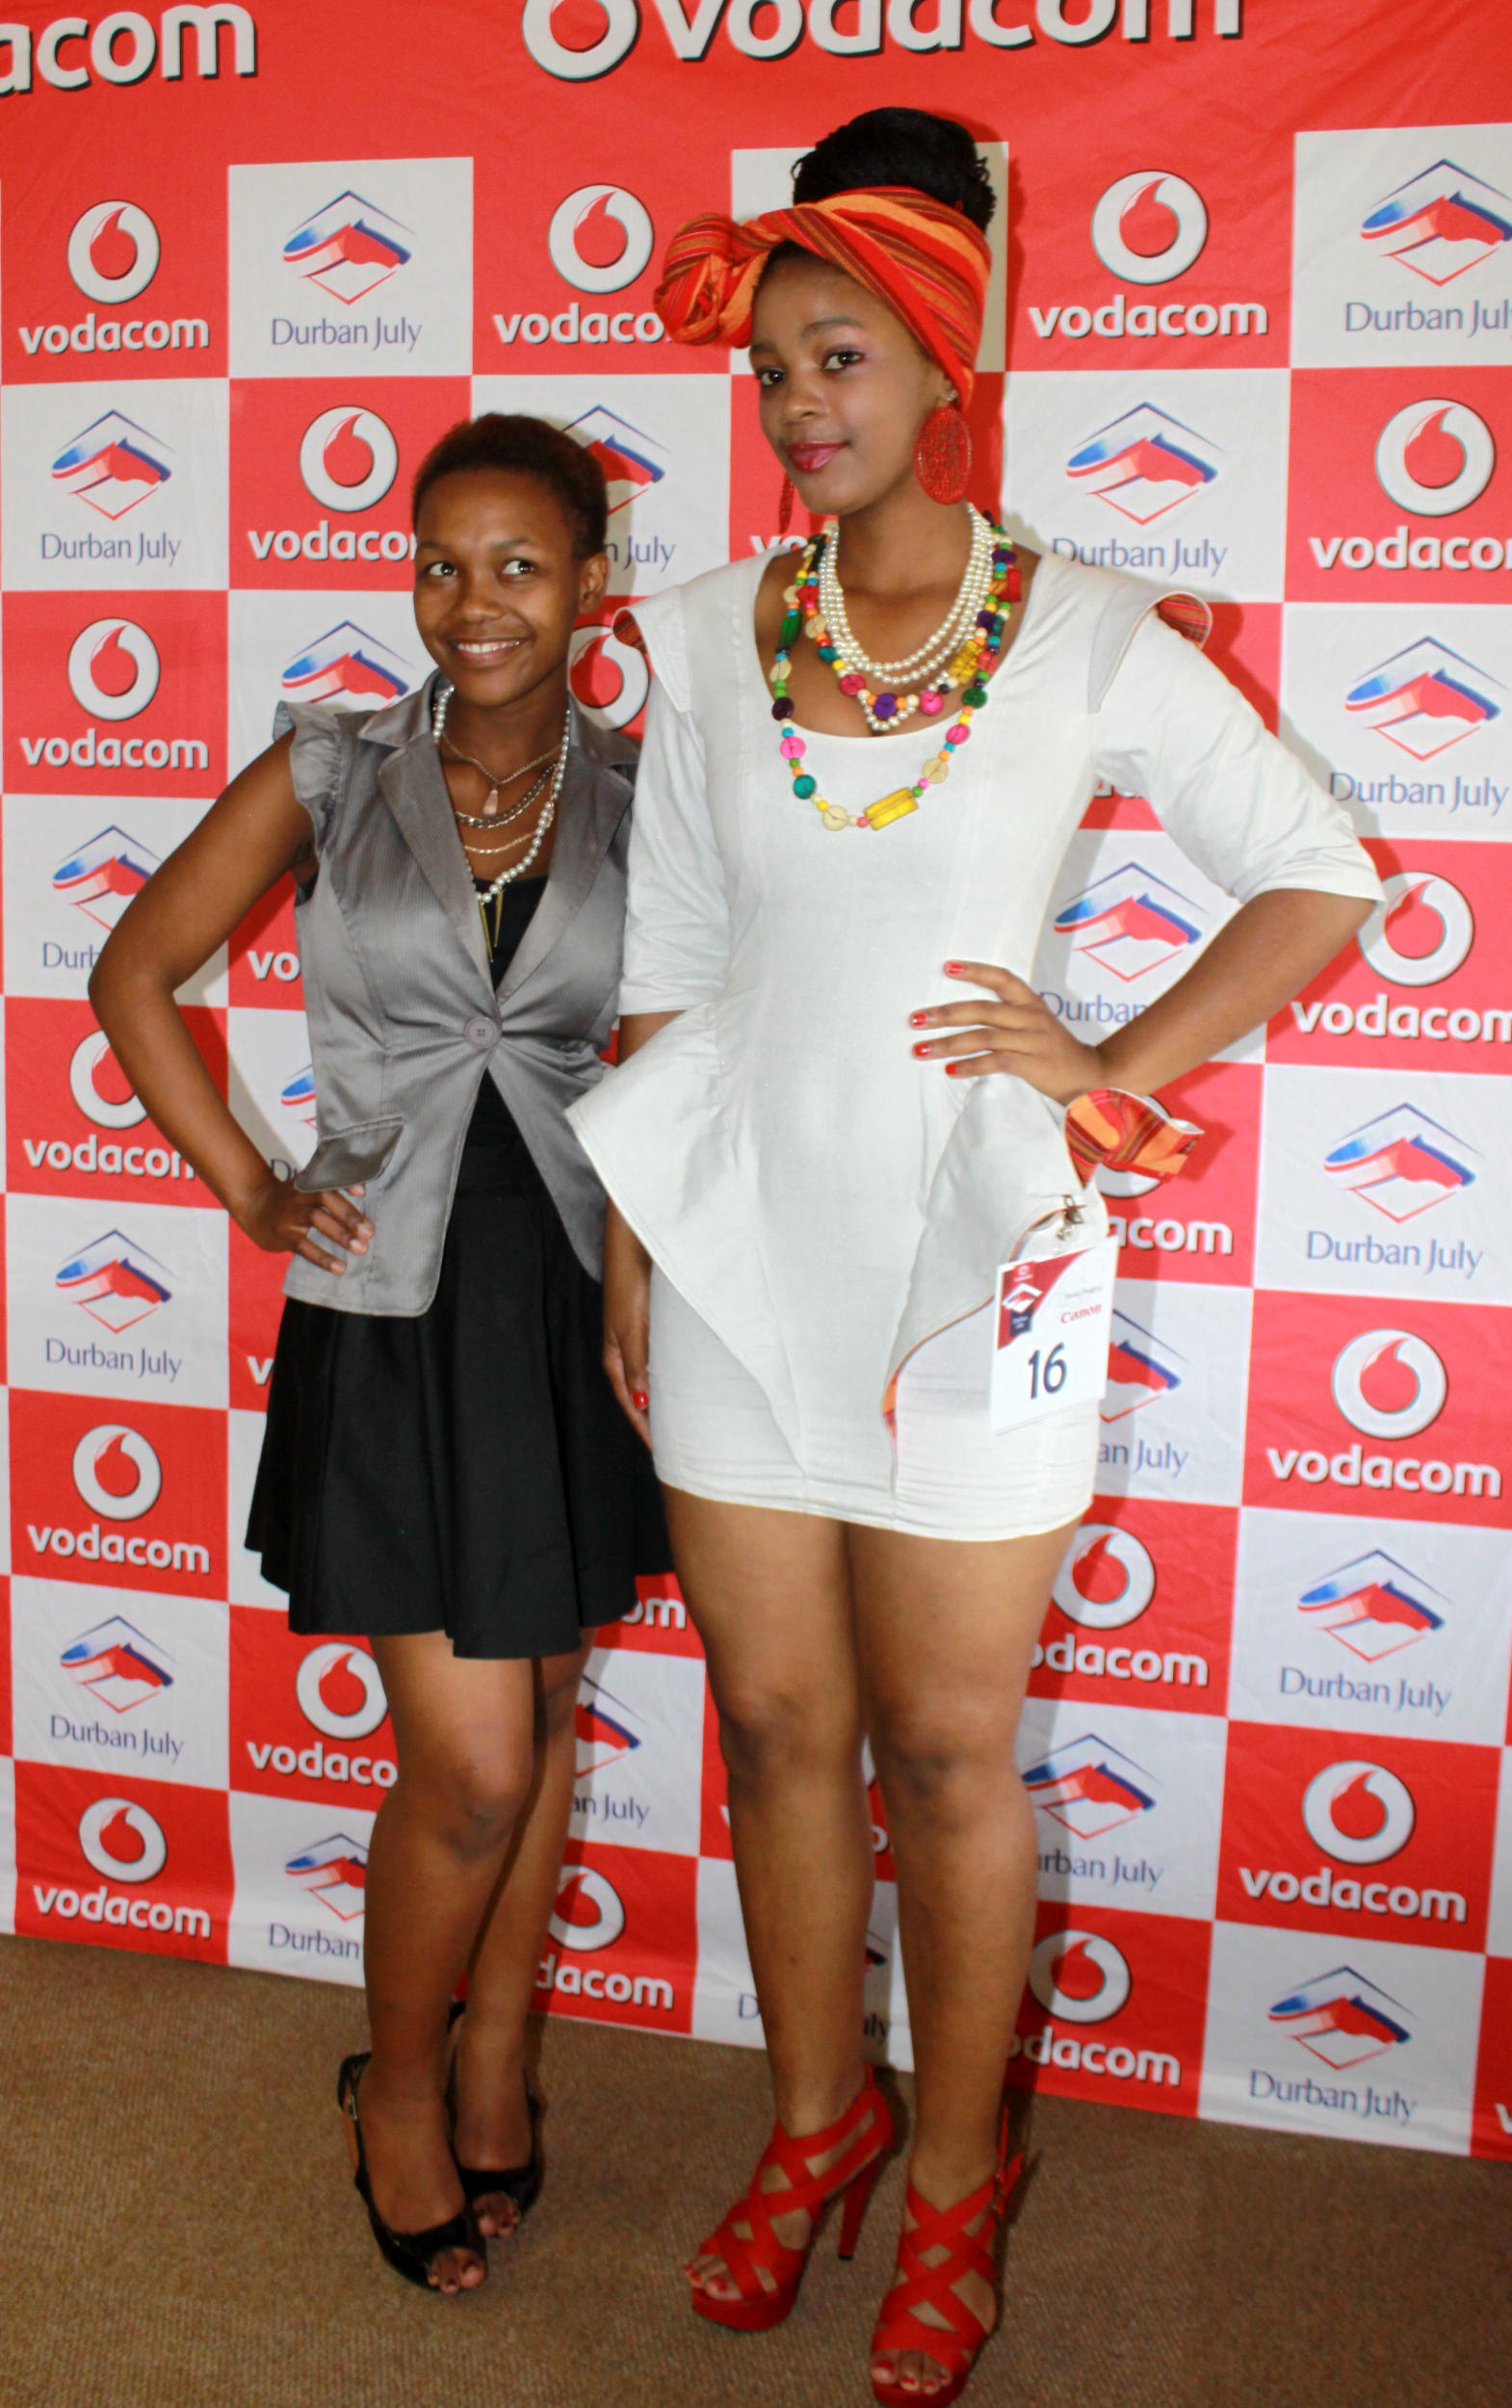 Vodacom Durban July Media Release